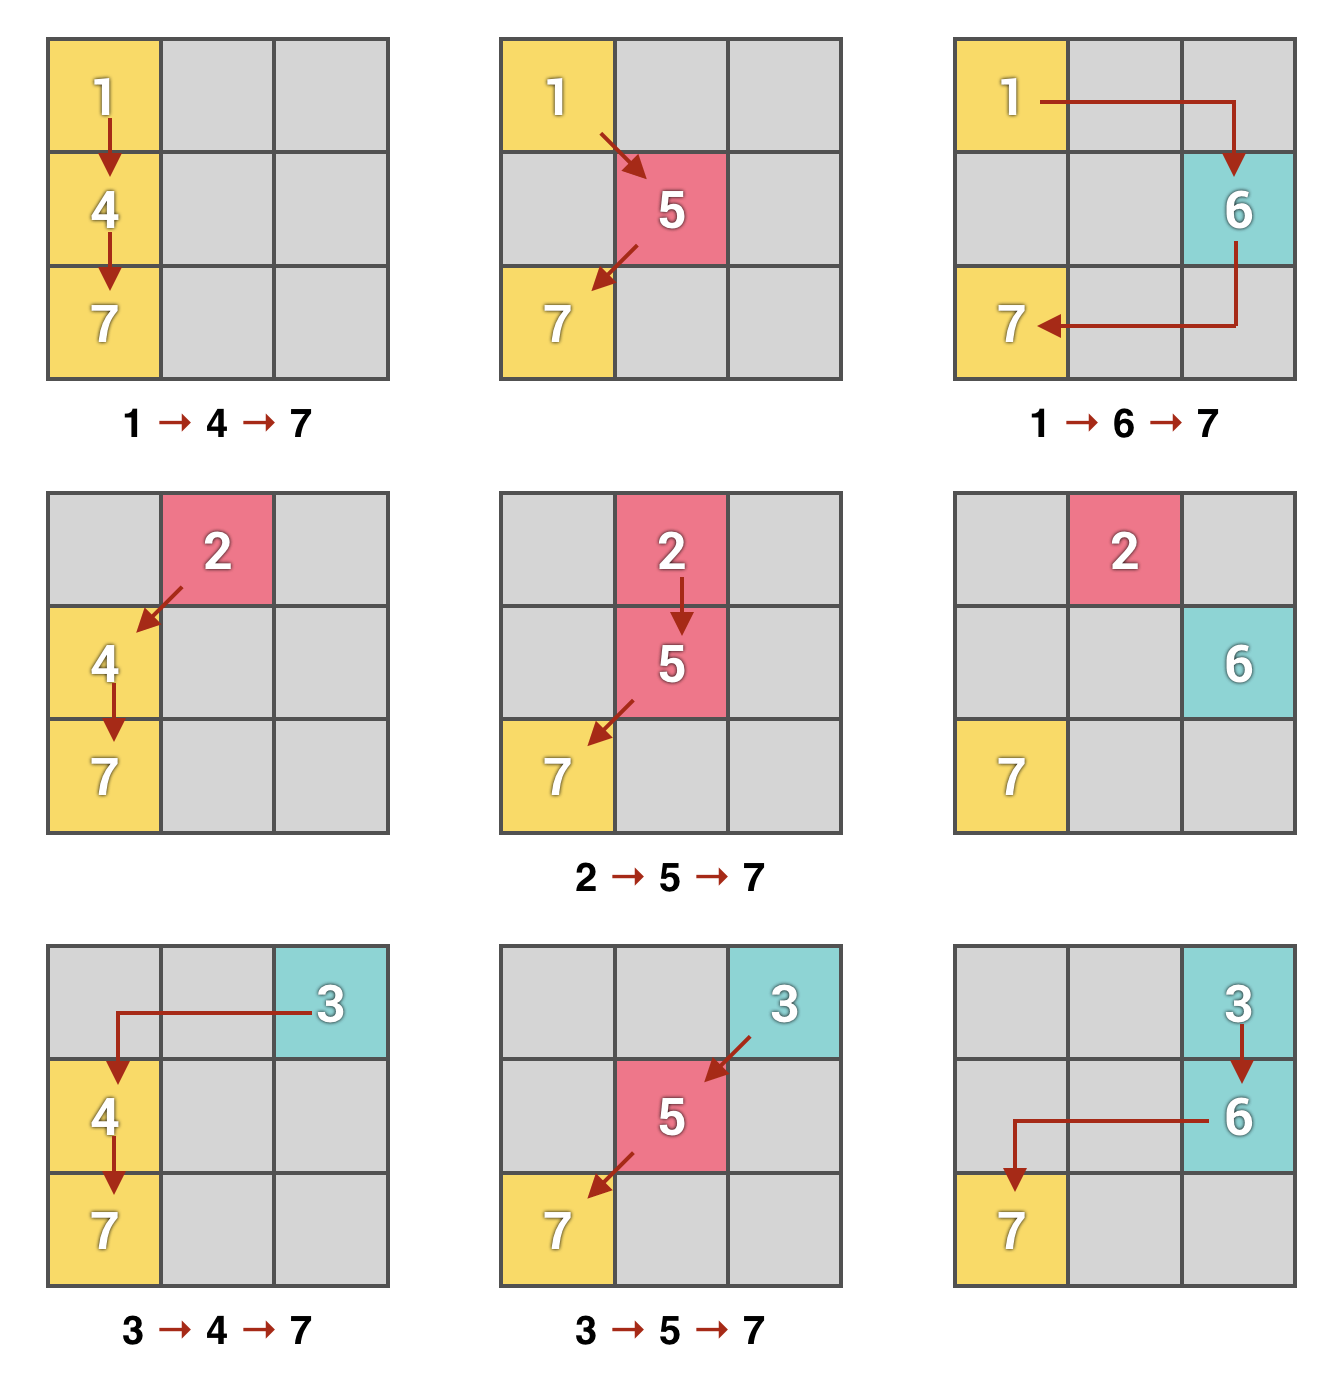 paths of expression of the number 7